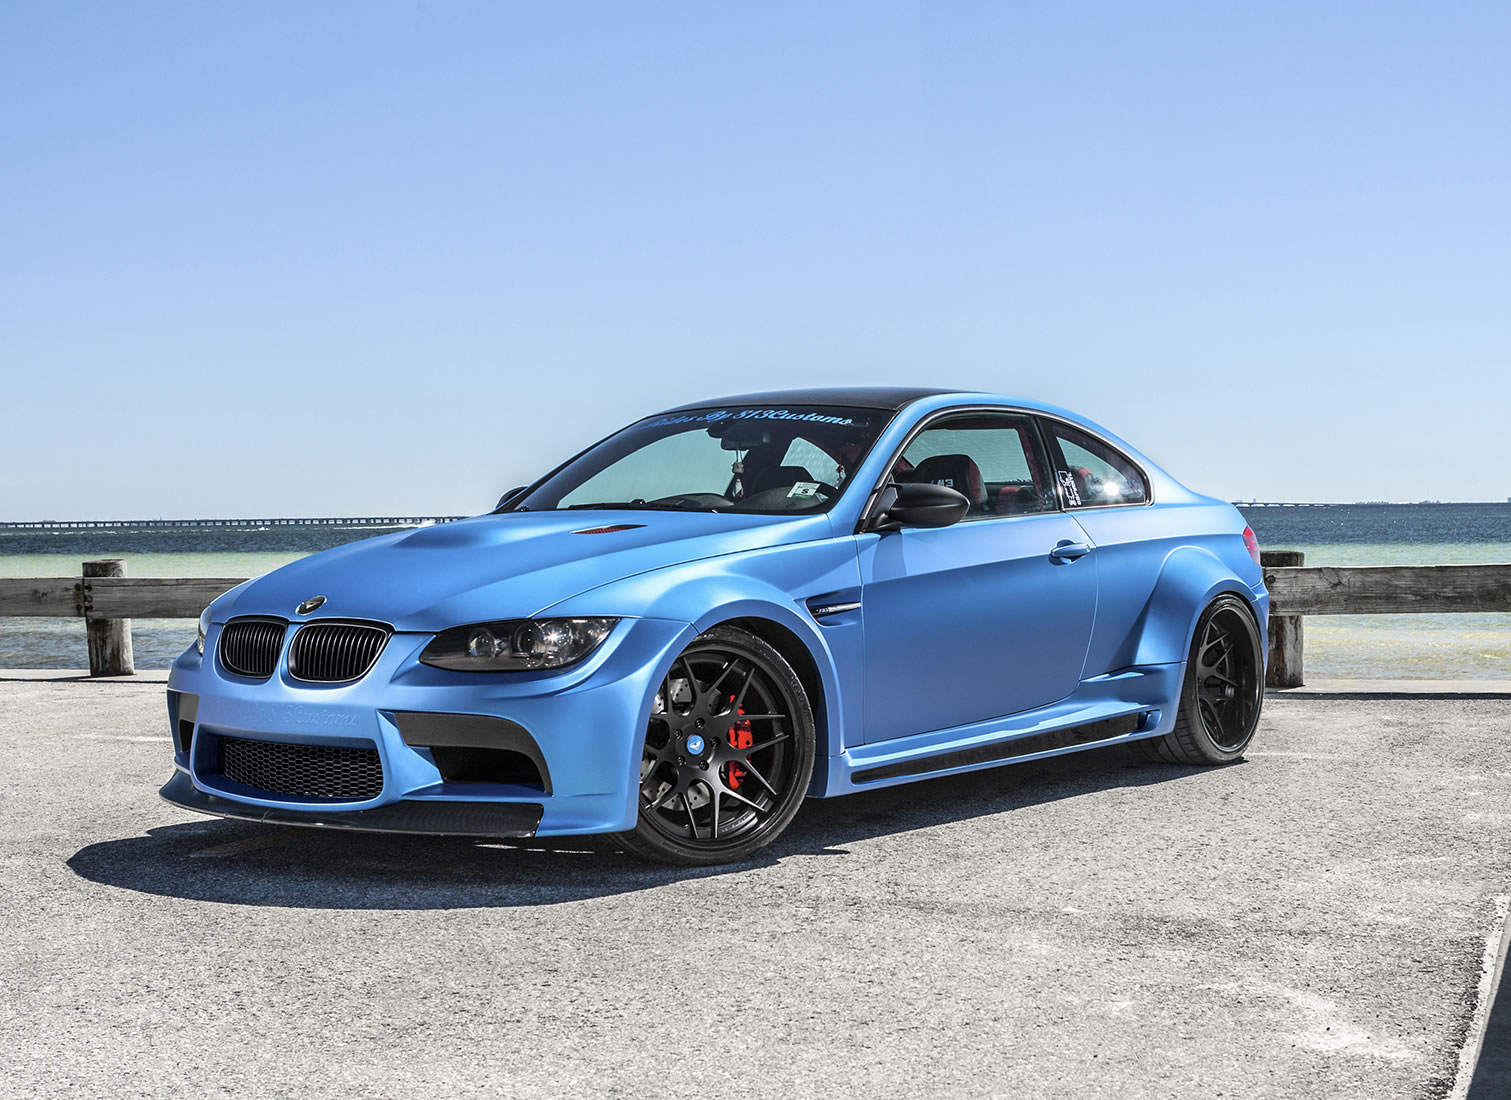 bmw m3 gtrs3 wallpapers - photo #24